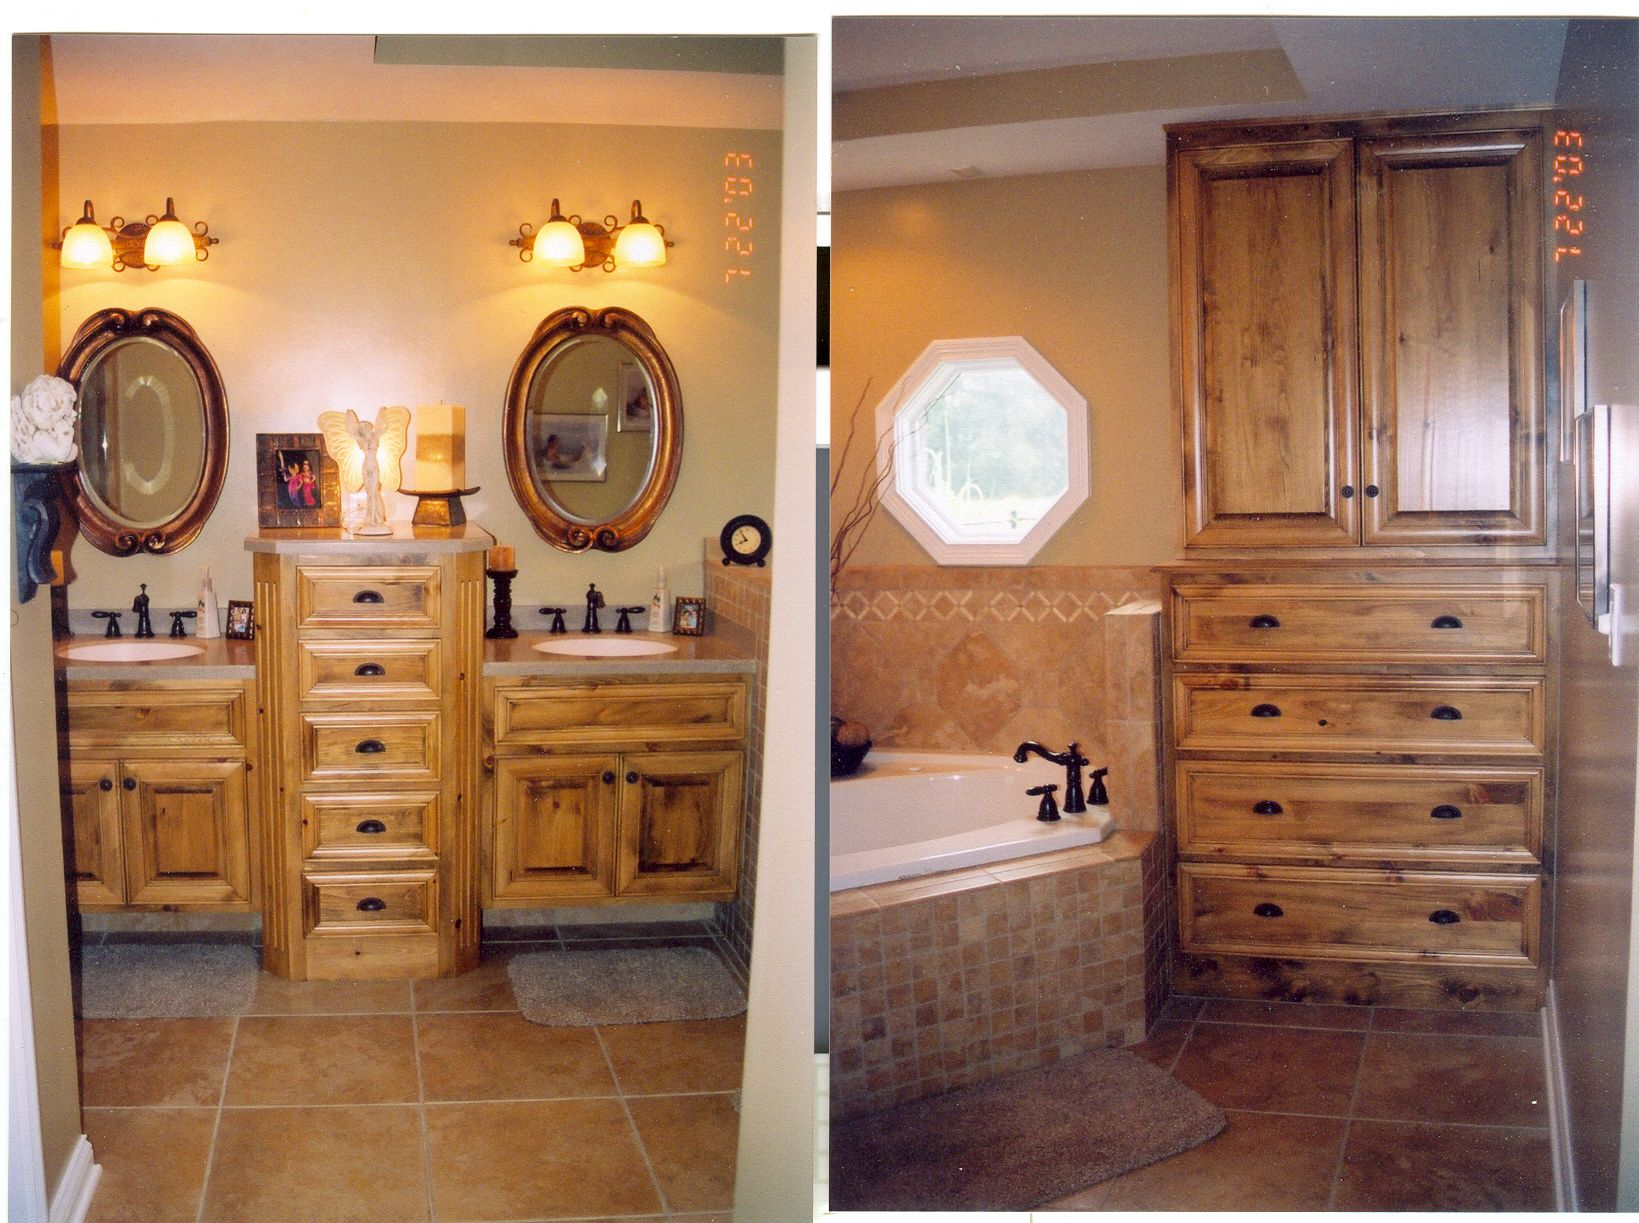 Knotty Pine bath to match master bedroom furniture. Knotty Pine bath to match master bedroom furniture   Projects By